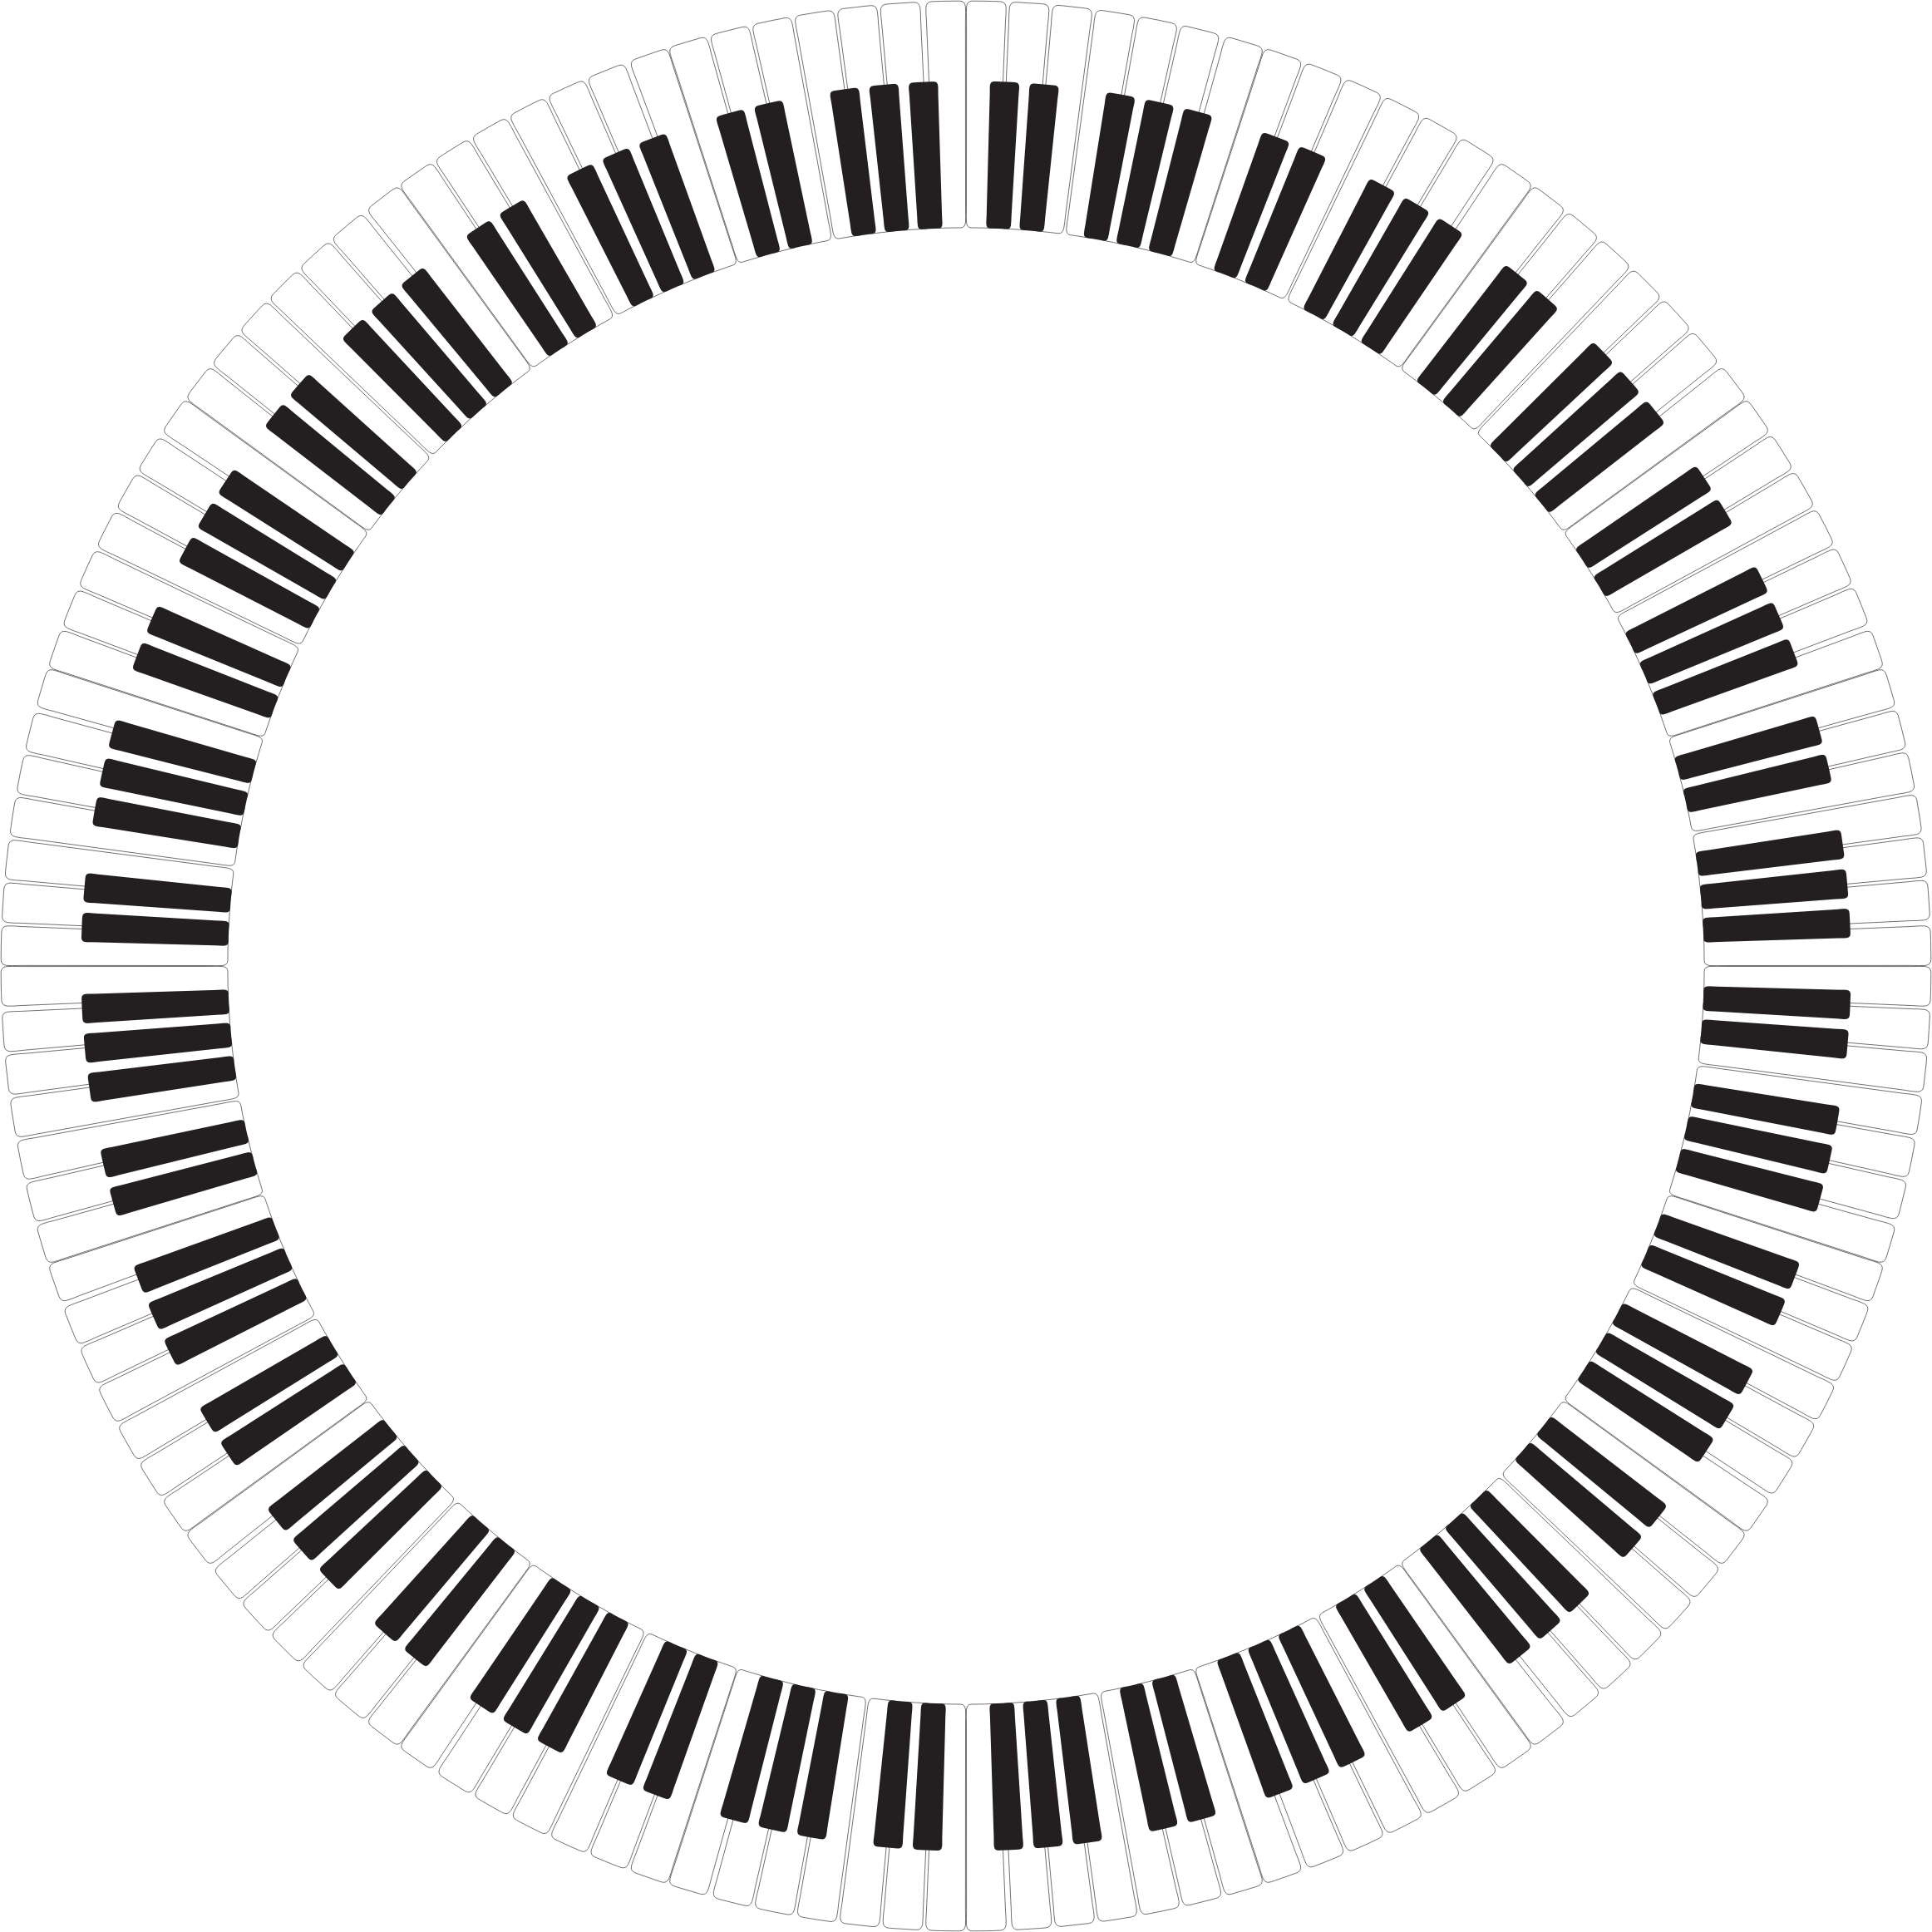 clipart piano keys circle inverted. Black Bedroom Furniture Sets. Home Design Ideas